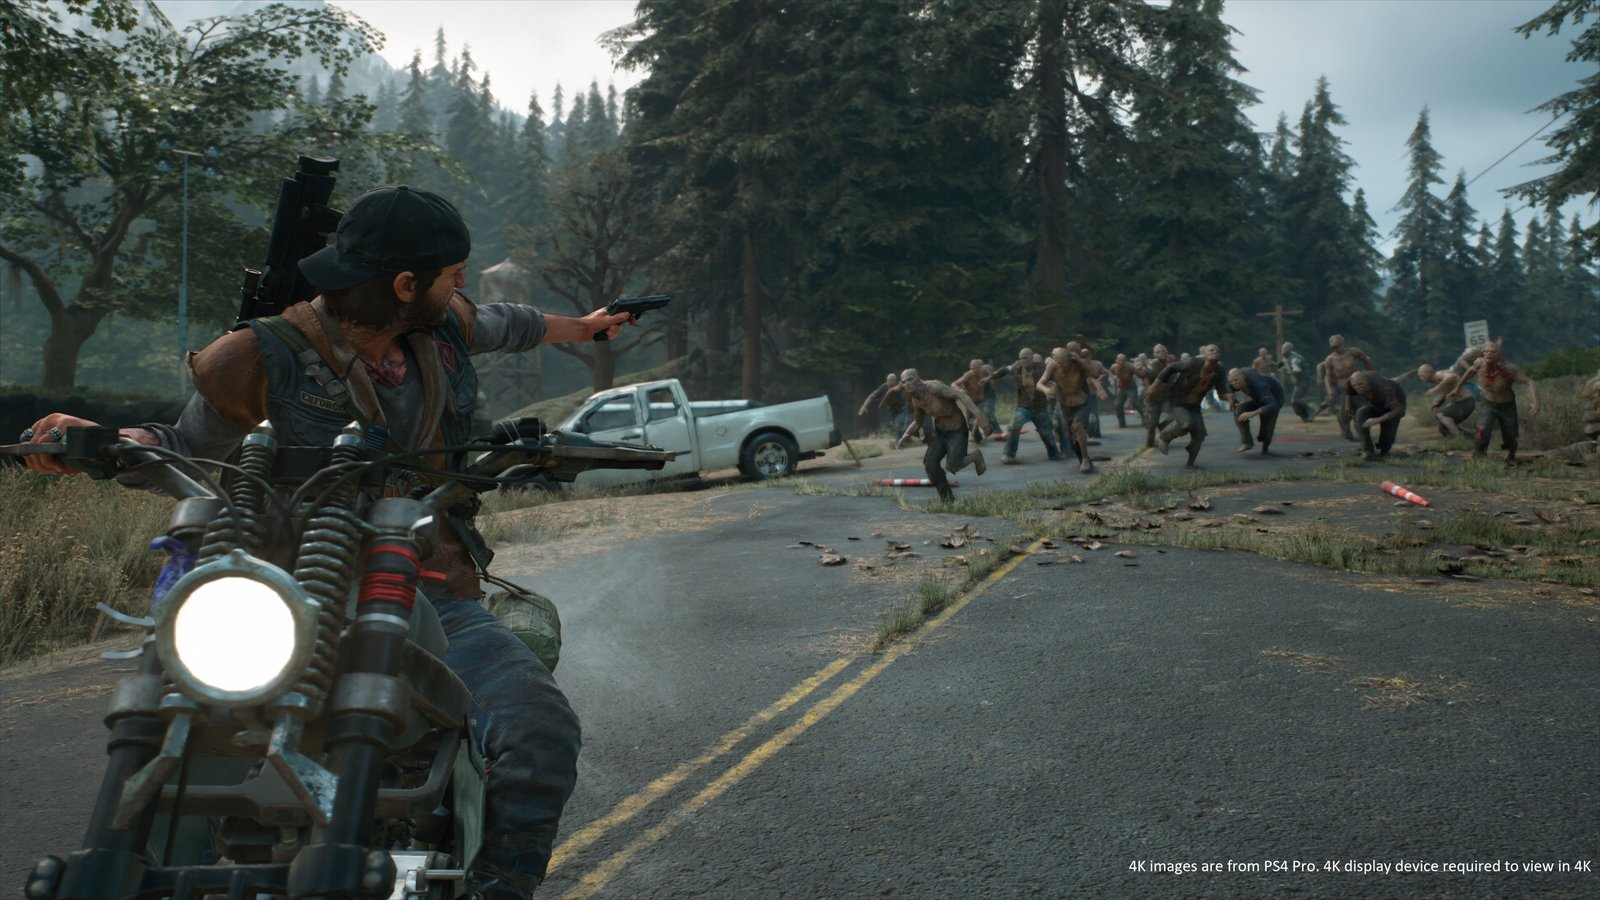 Is Days Gone an open world game